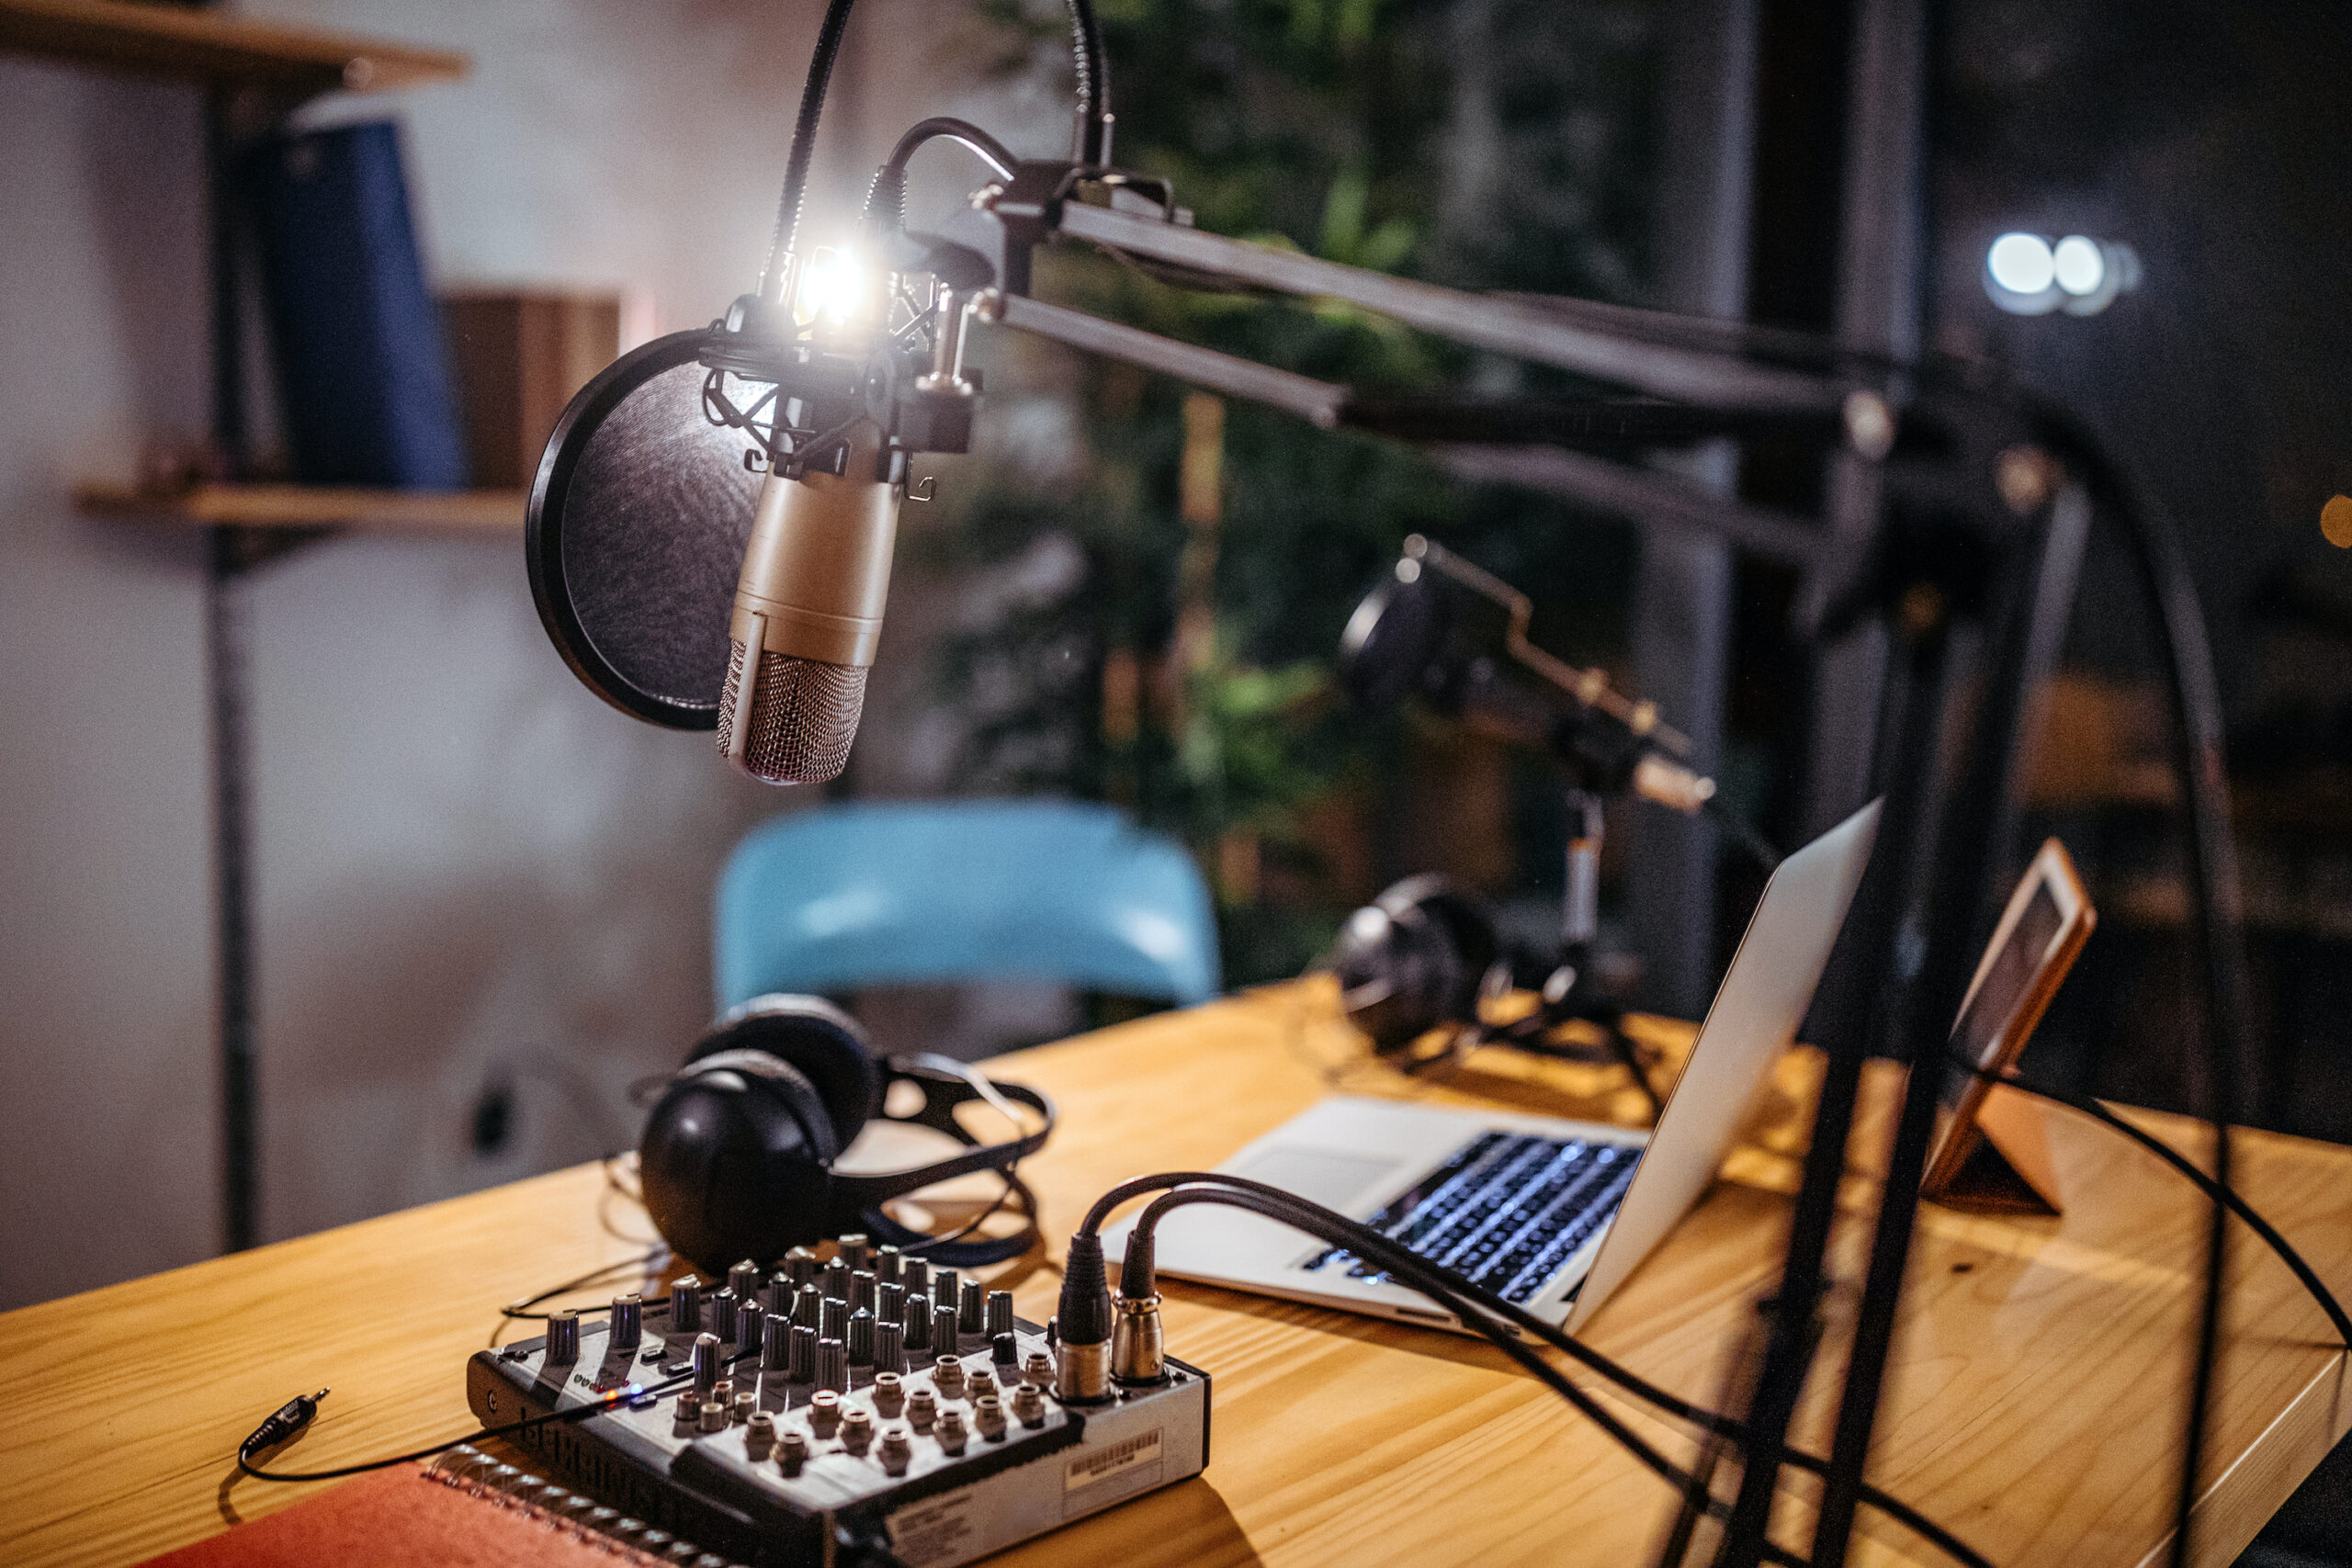 Podcast Companies Are Betting on Advertising Technology to Boost Business, but Some Remain Hesitant